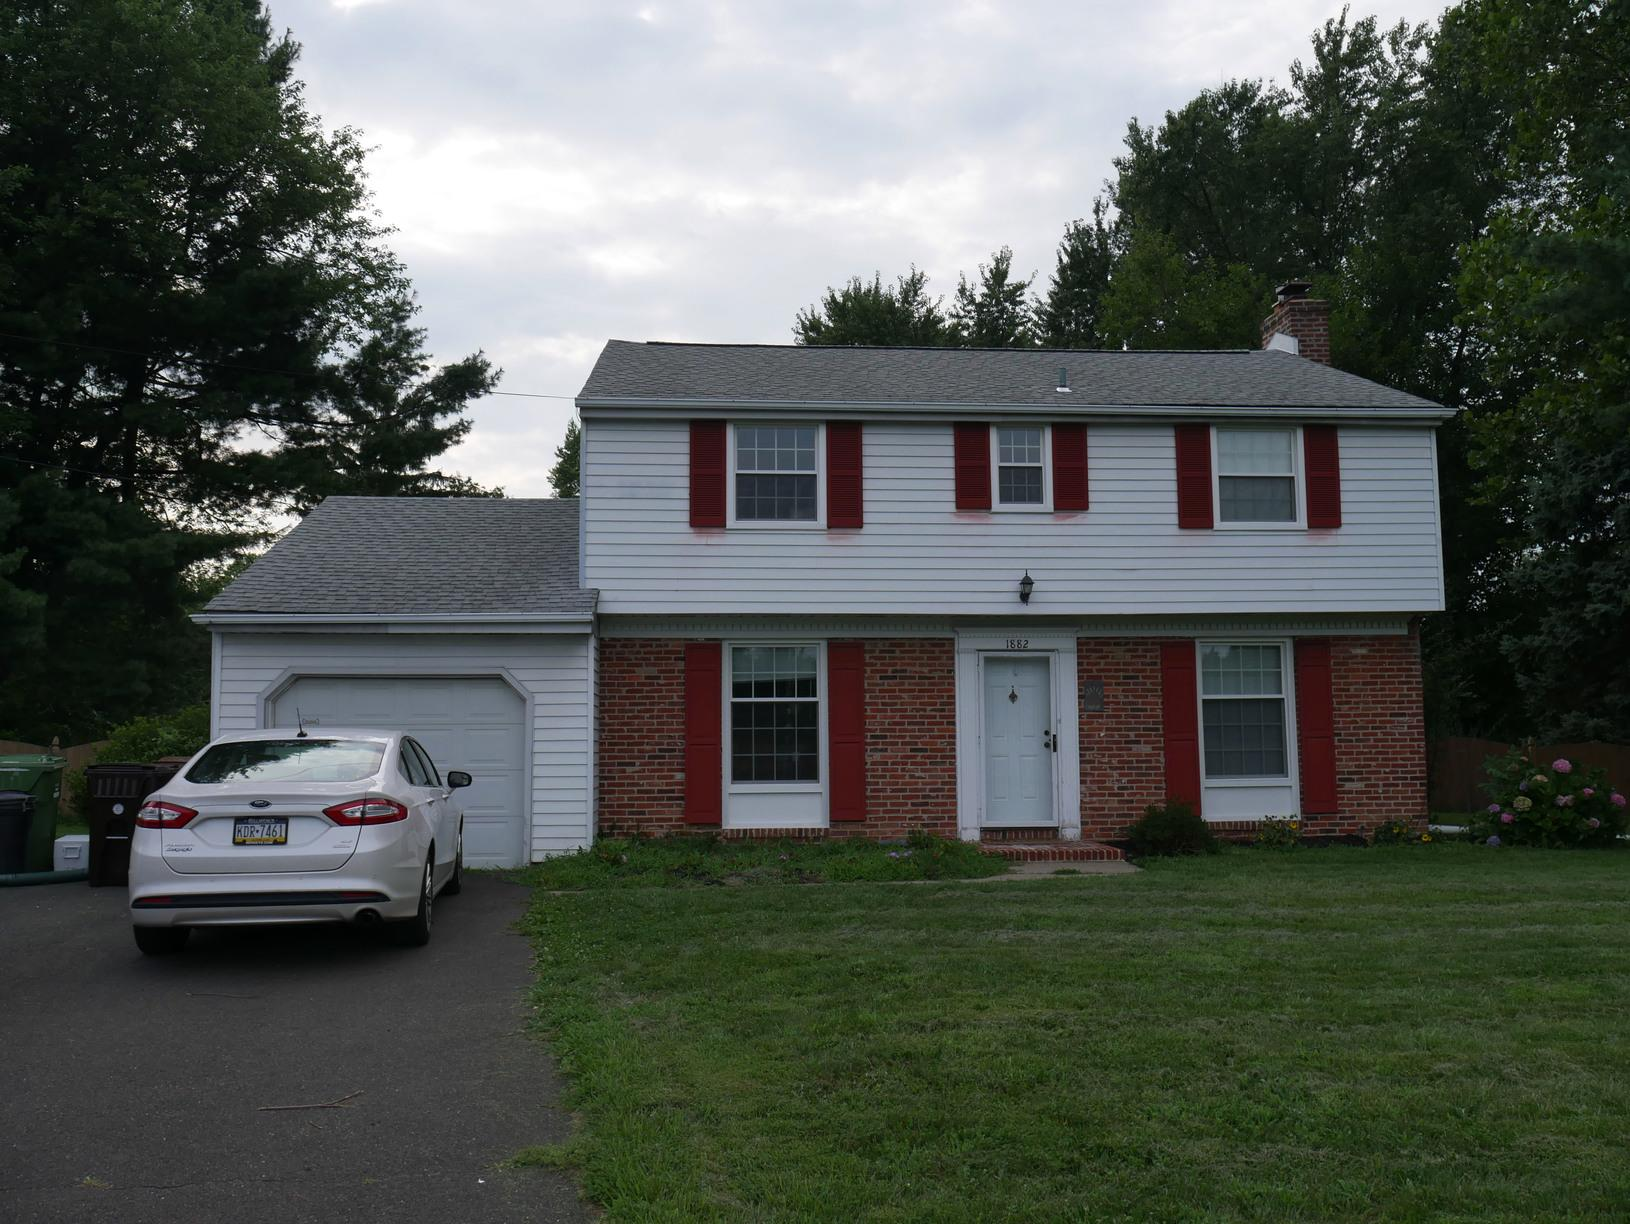 Final Photo of Home After Marvin Infinity Window Installation in Maple Glen, PA